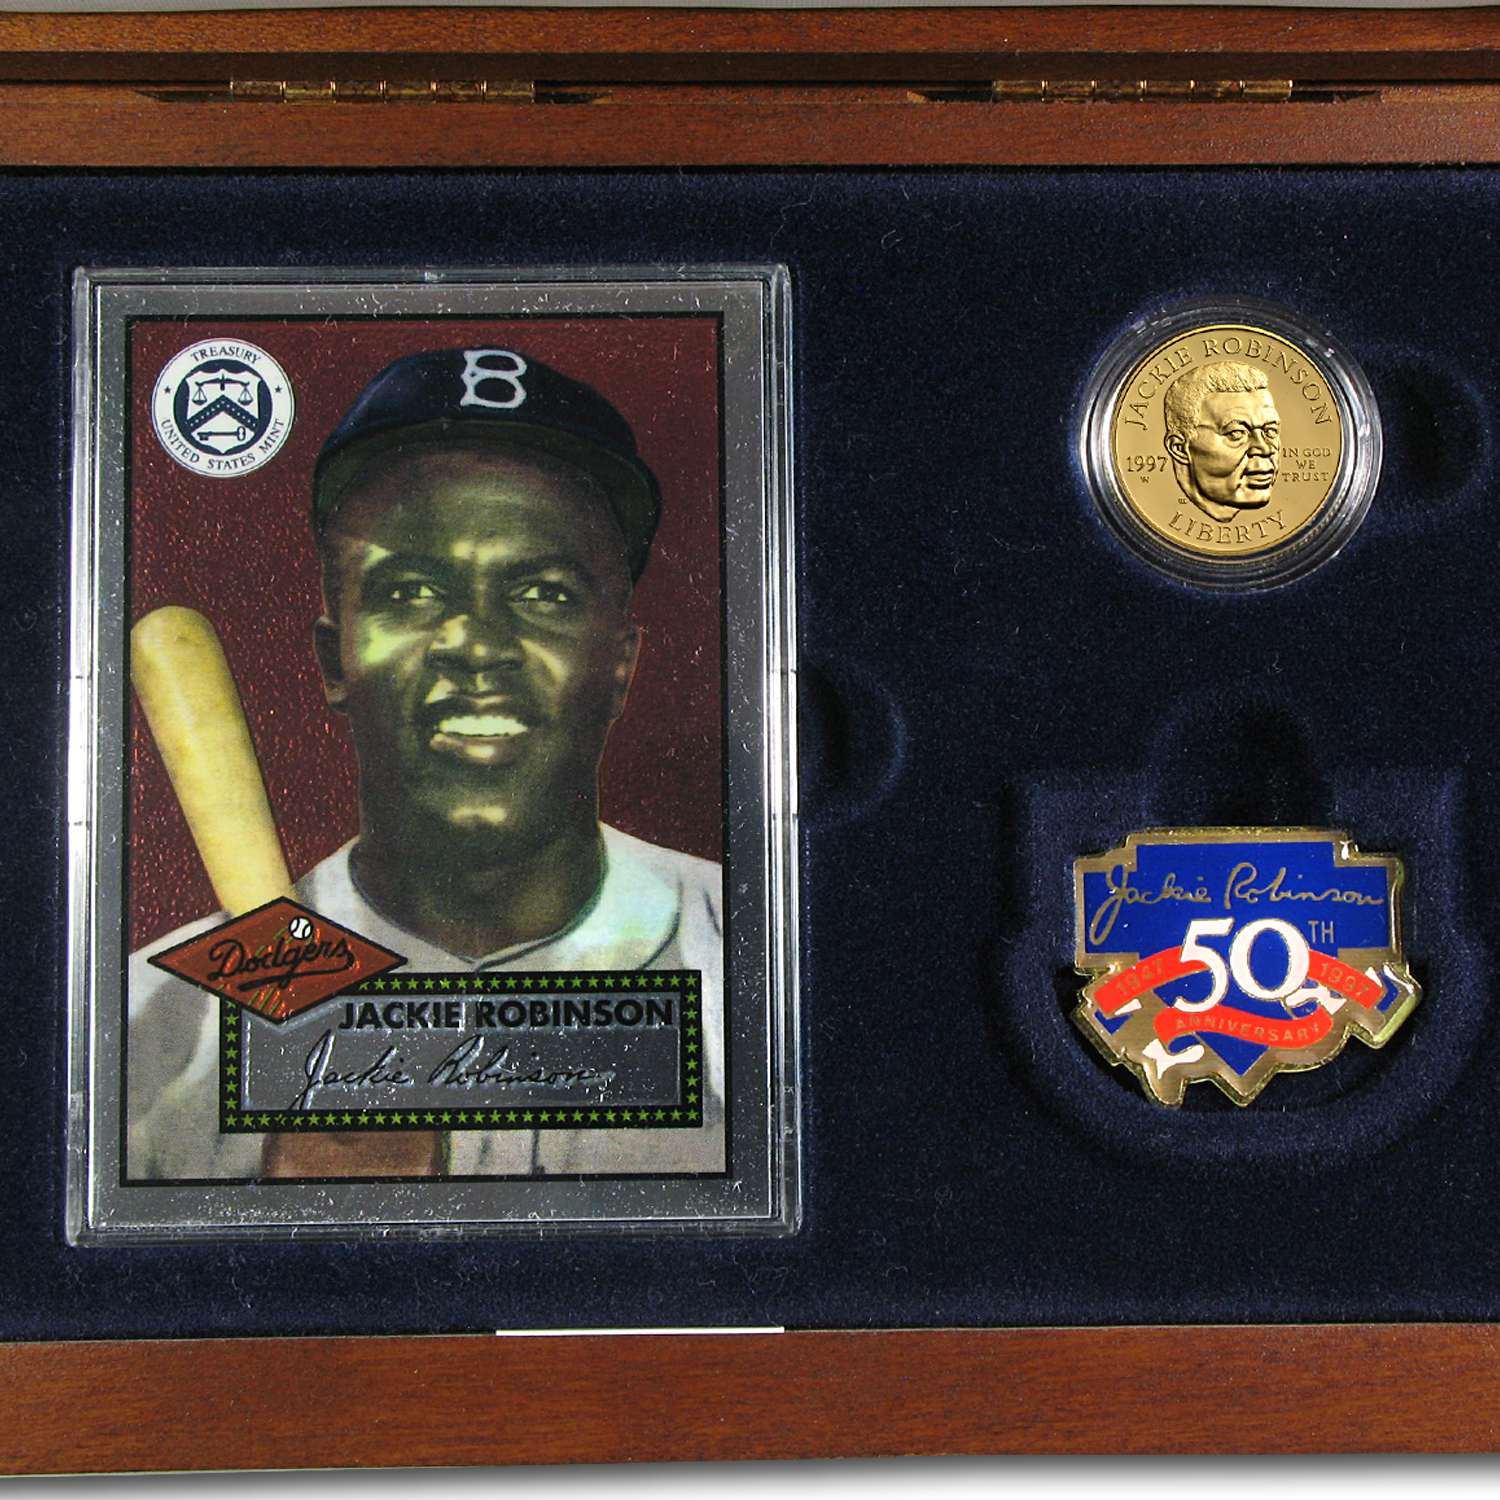 1997 Jackie Robinson - $5 Gold Commemorative - Legacy Set - Proof